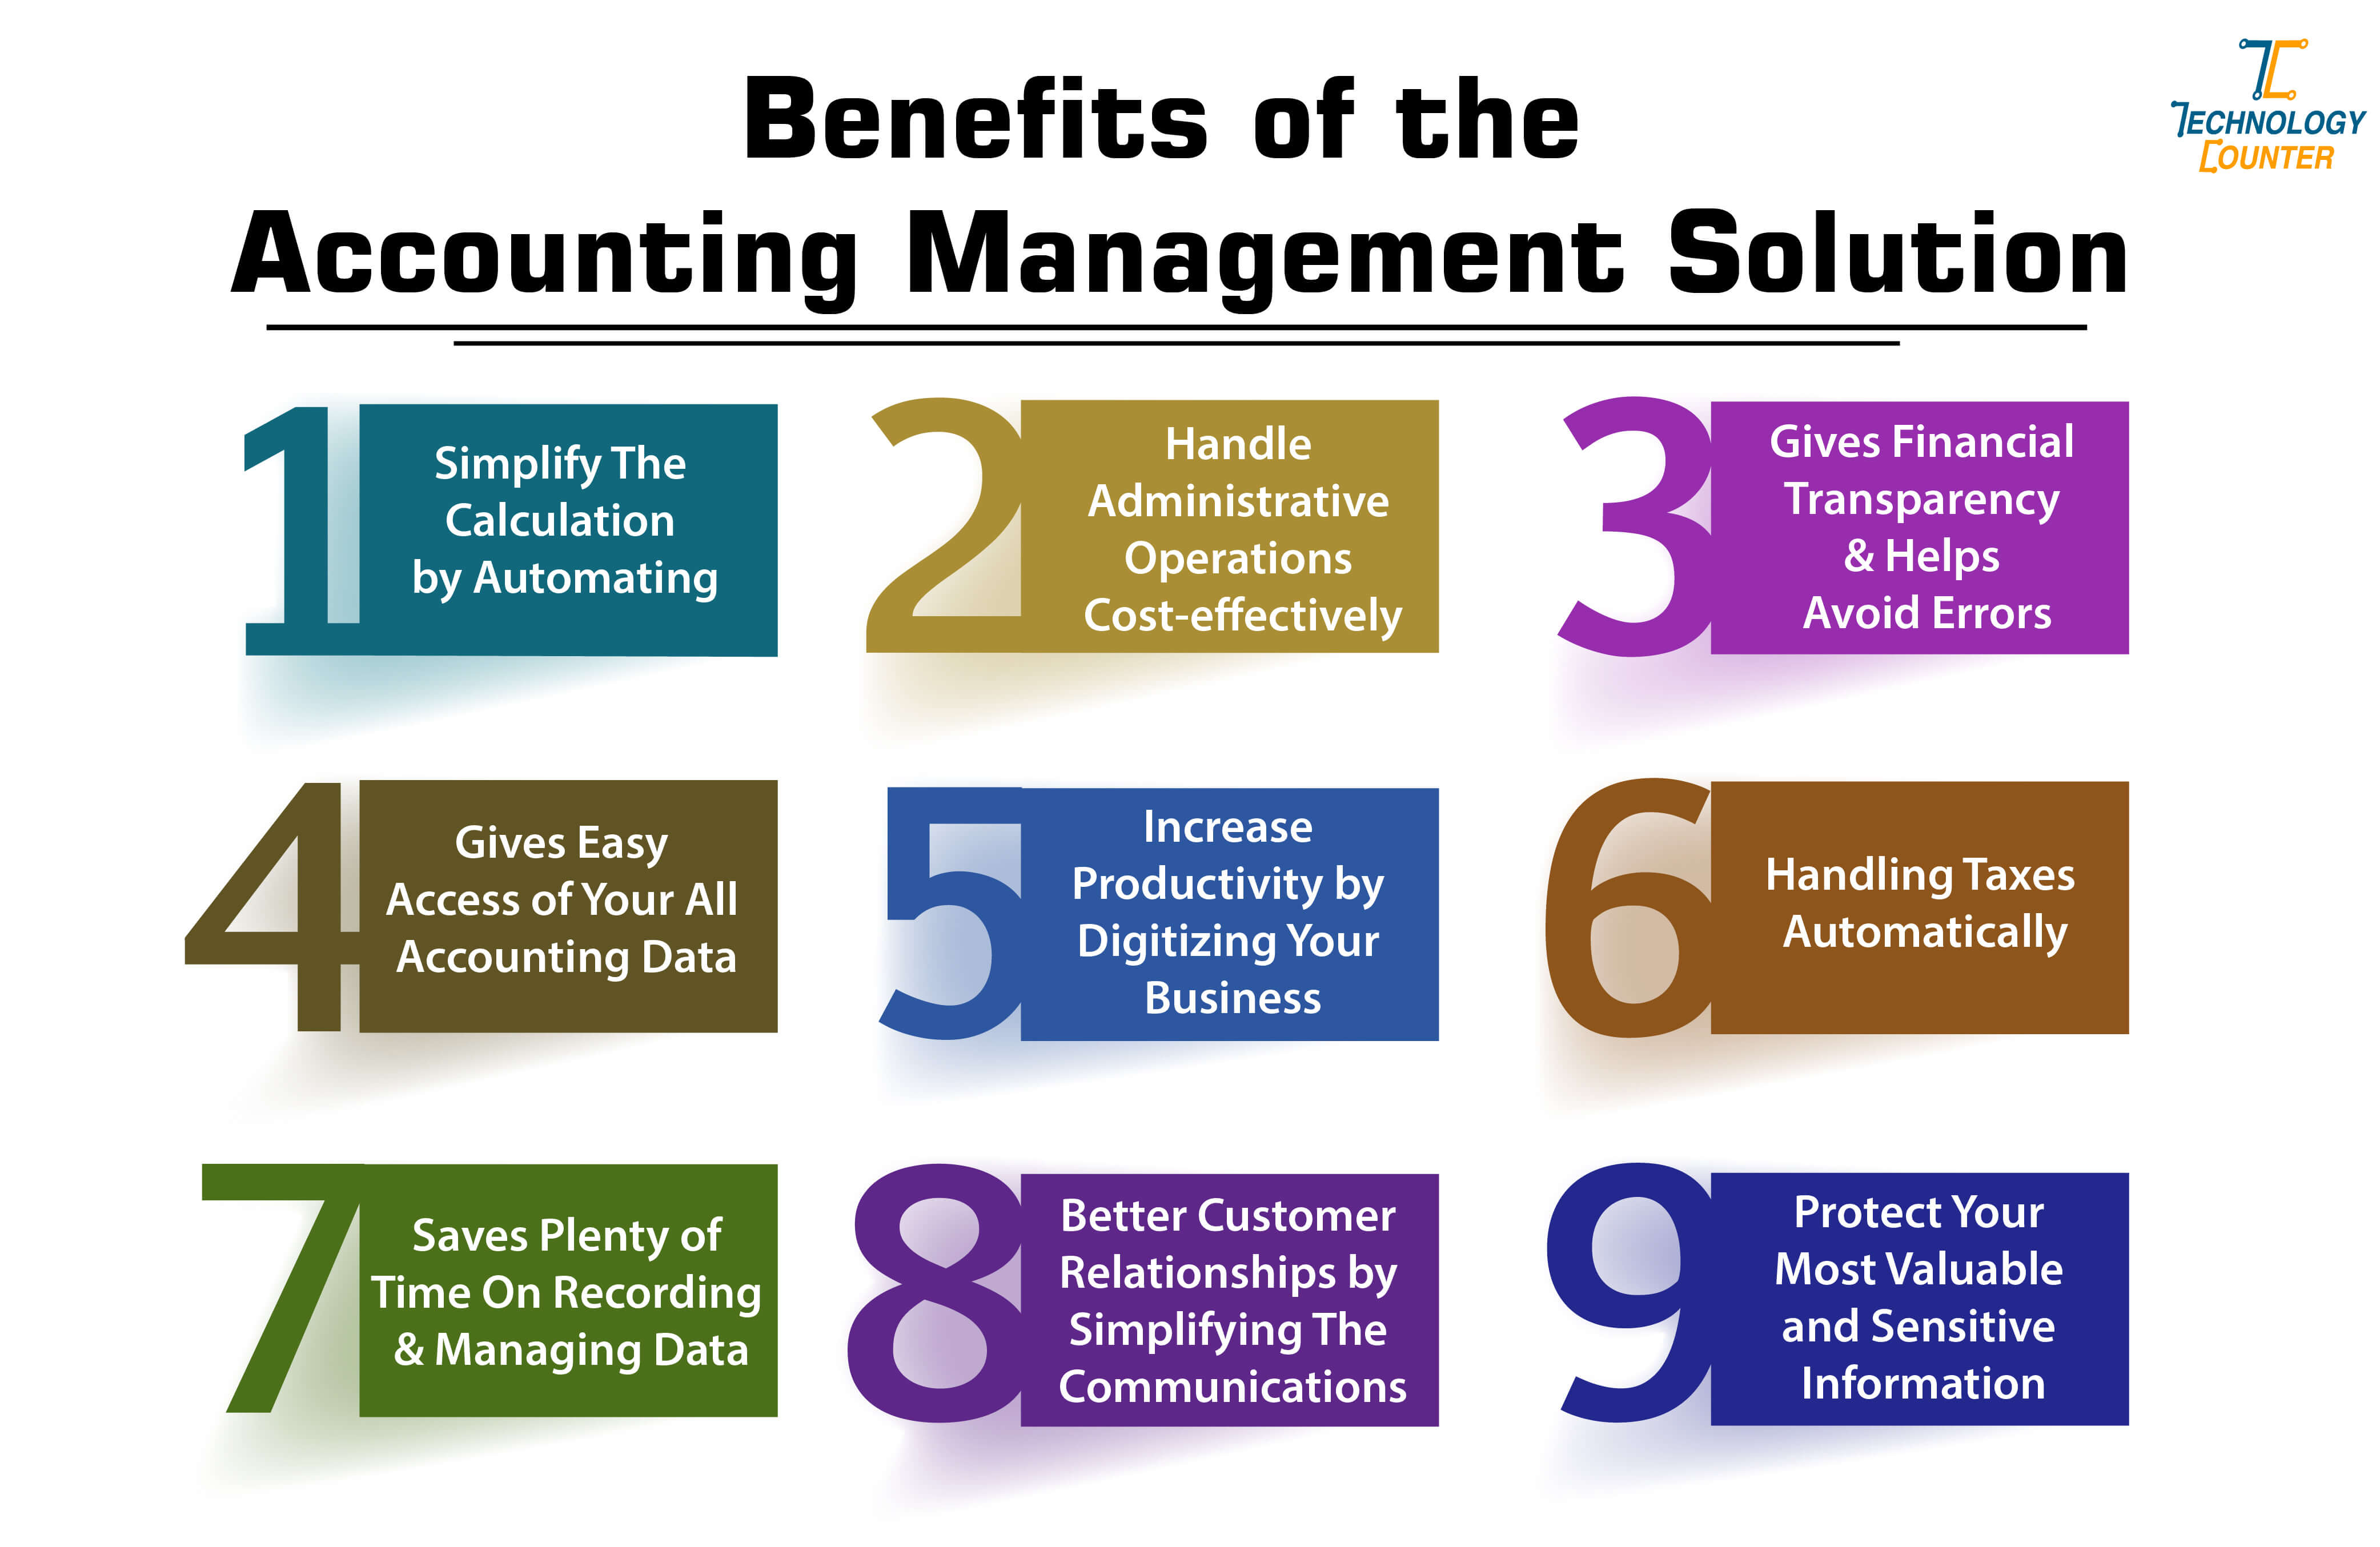 Benefits-of-Accounting-Management-Solution